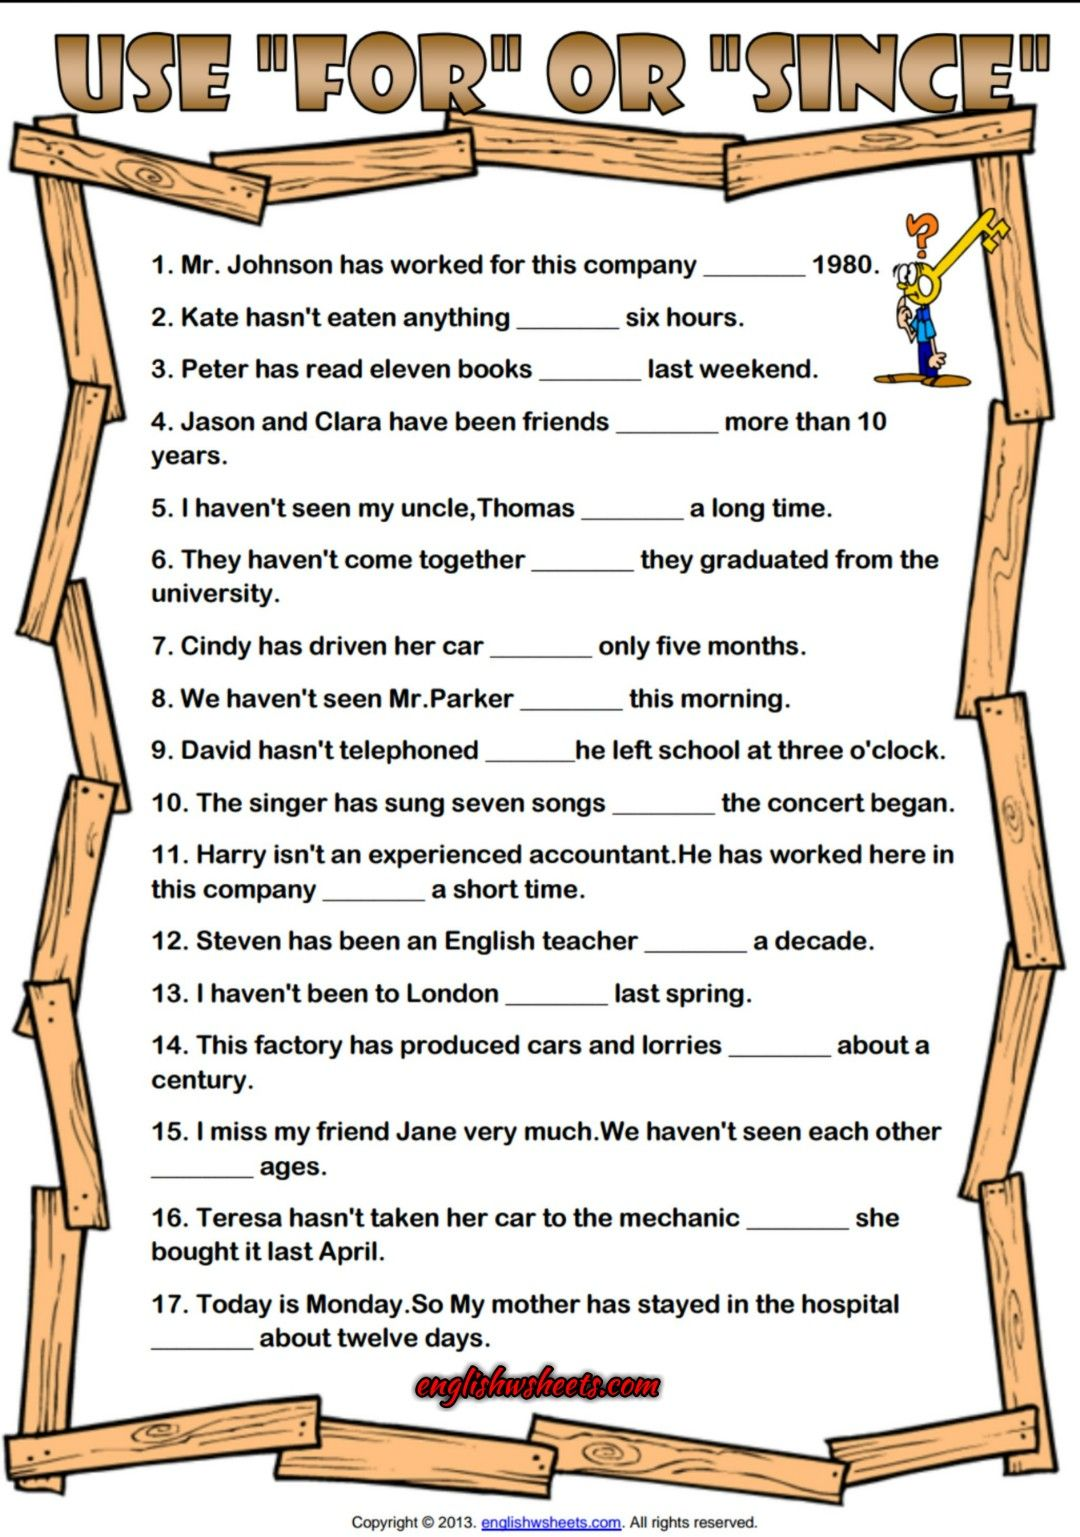 For And Since Esl Grammar Exercise Worksheet Grammar Exercises Present Perfect Tense Exercises Present Perfect [ 1537 x 1080 Pixel ]